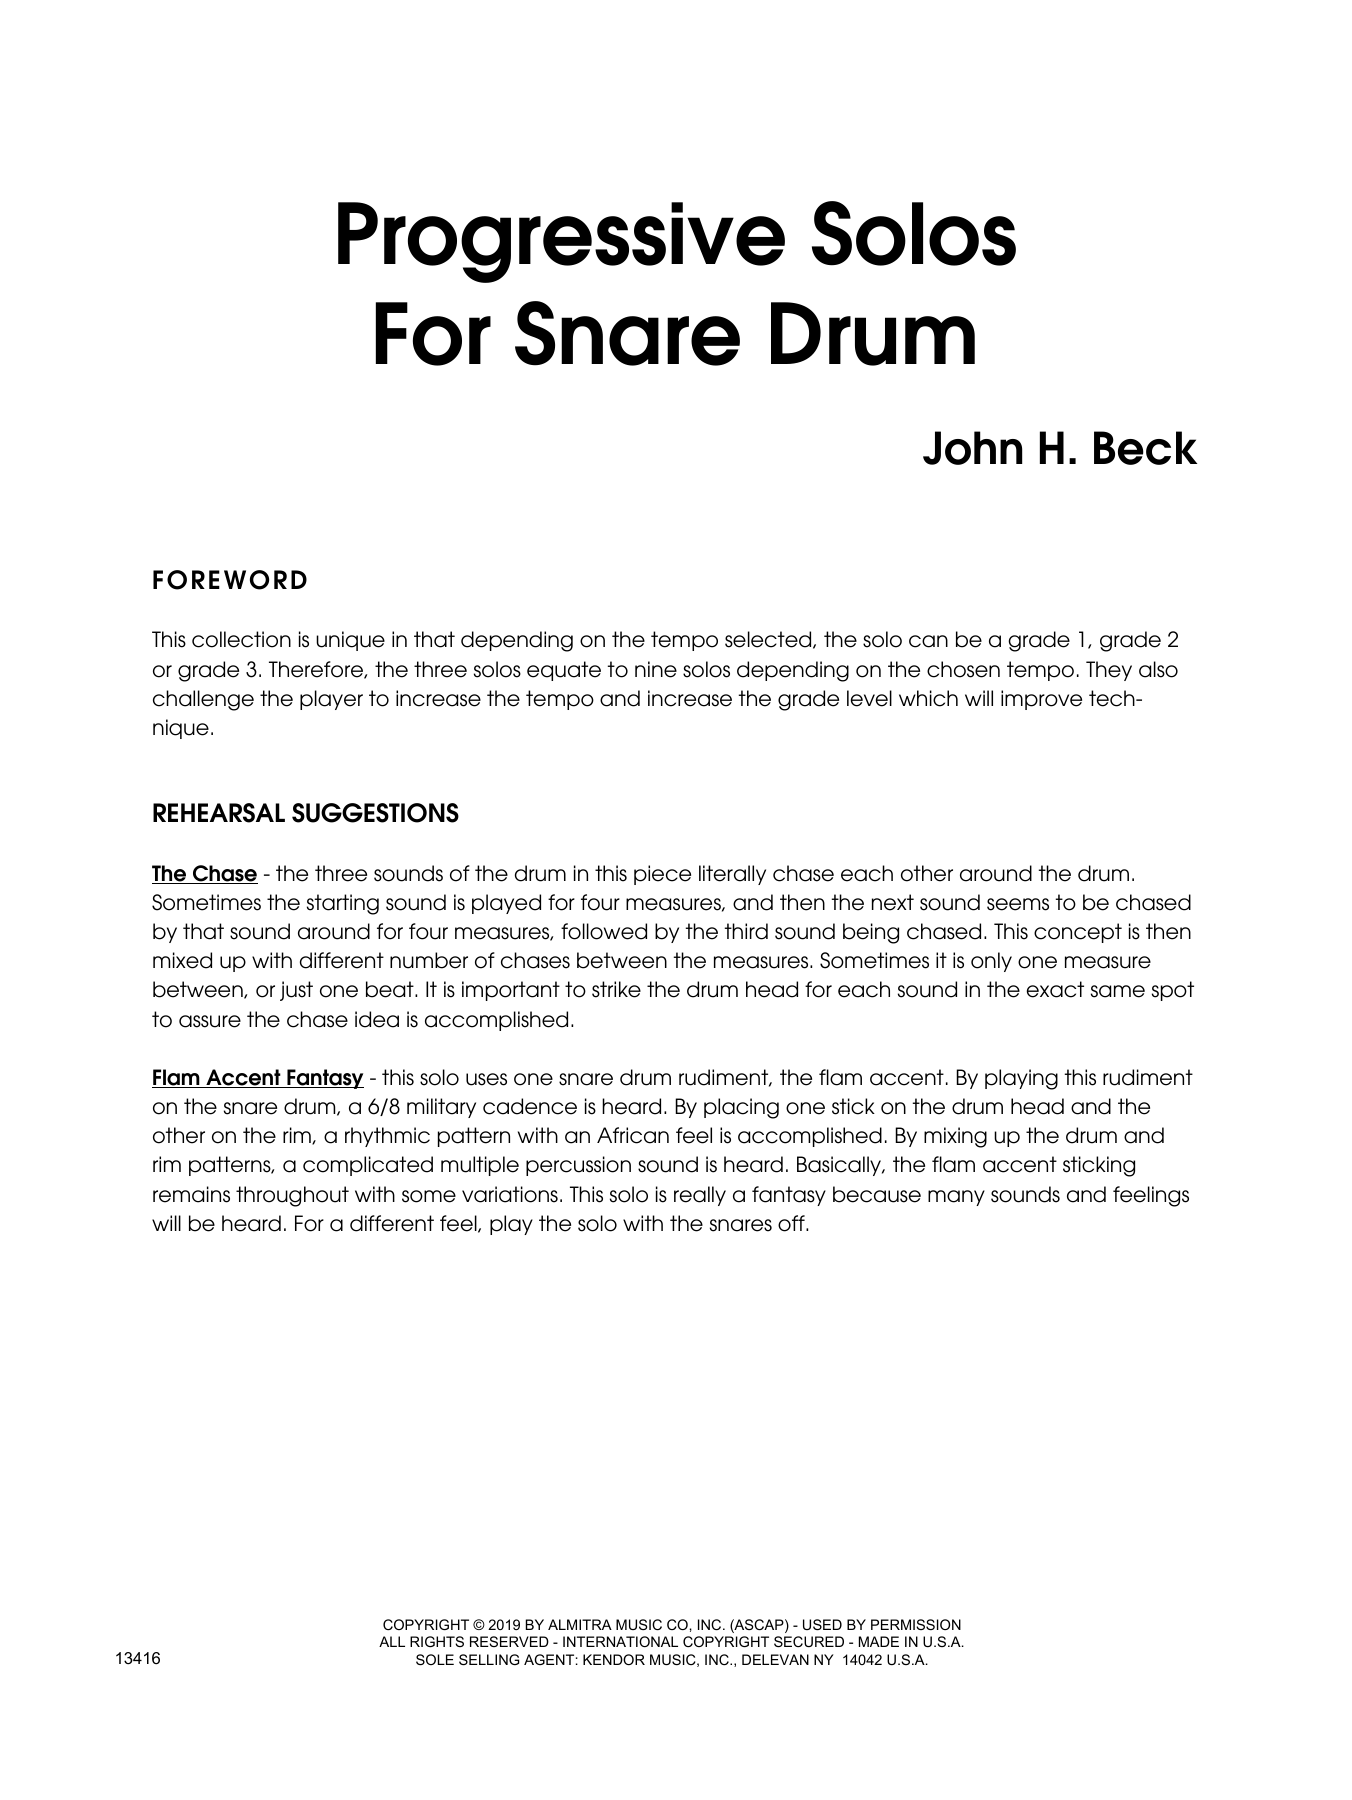 John H. Beck Progressive Solos For Snare Drum sheet music notes and chords. Download Printable PDF.